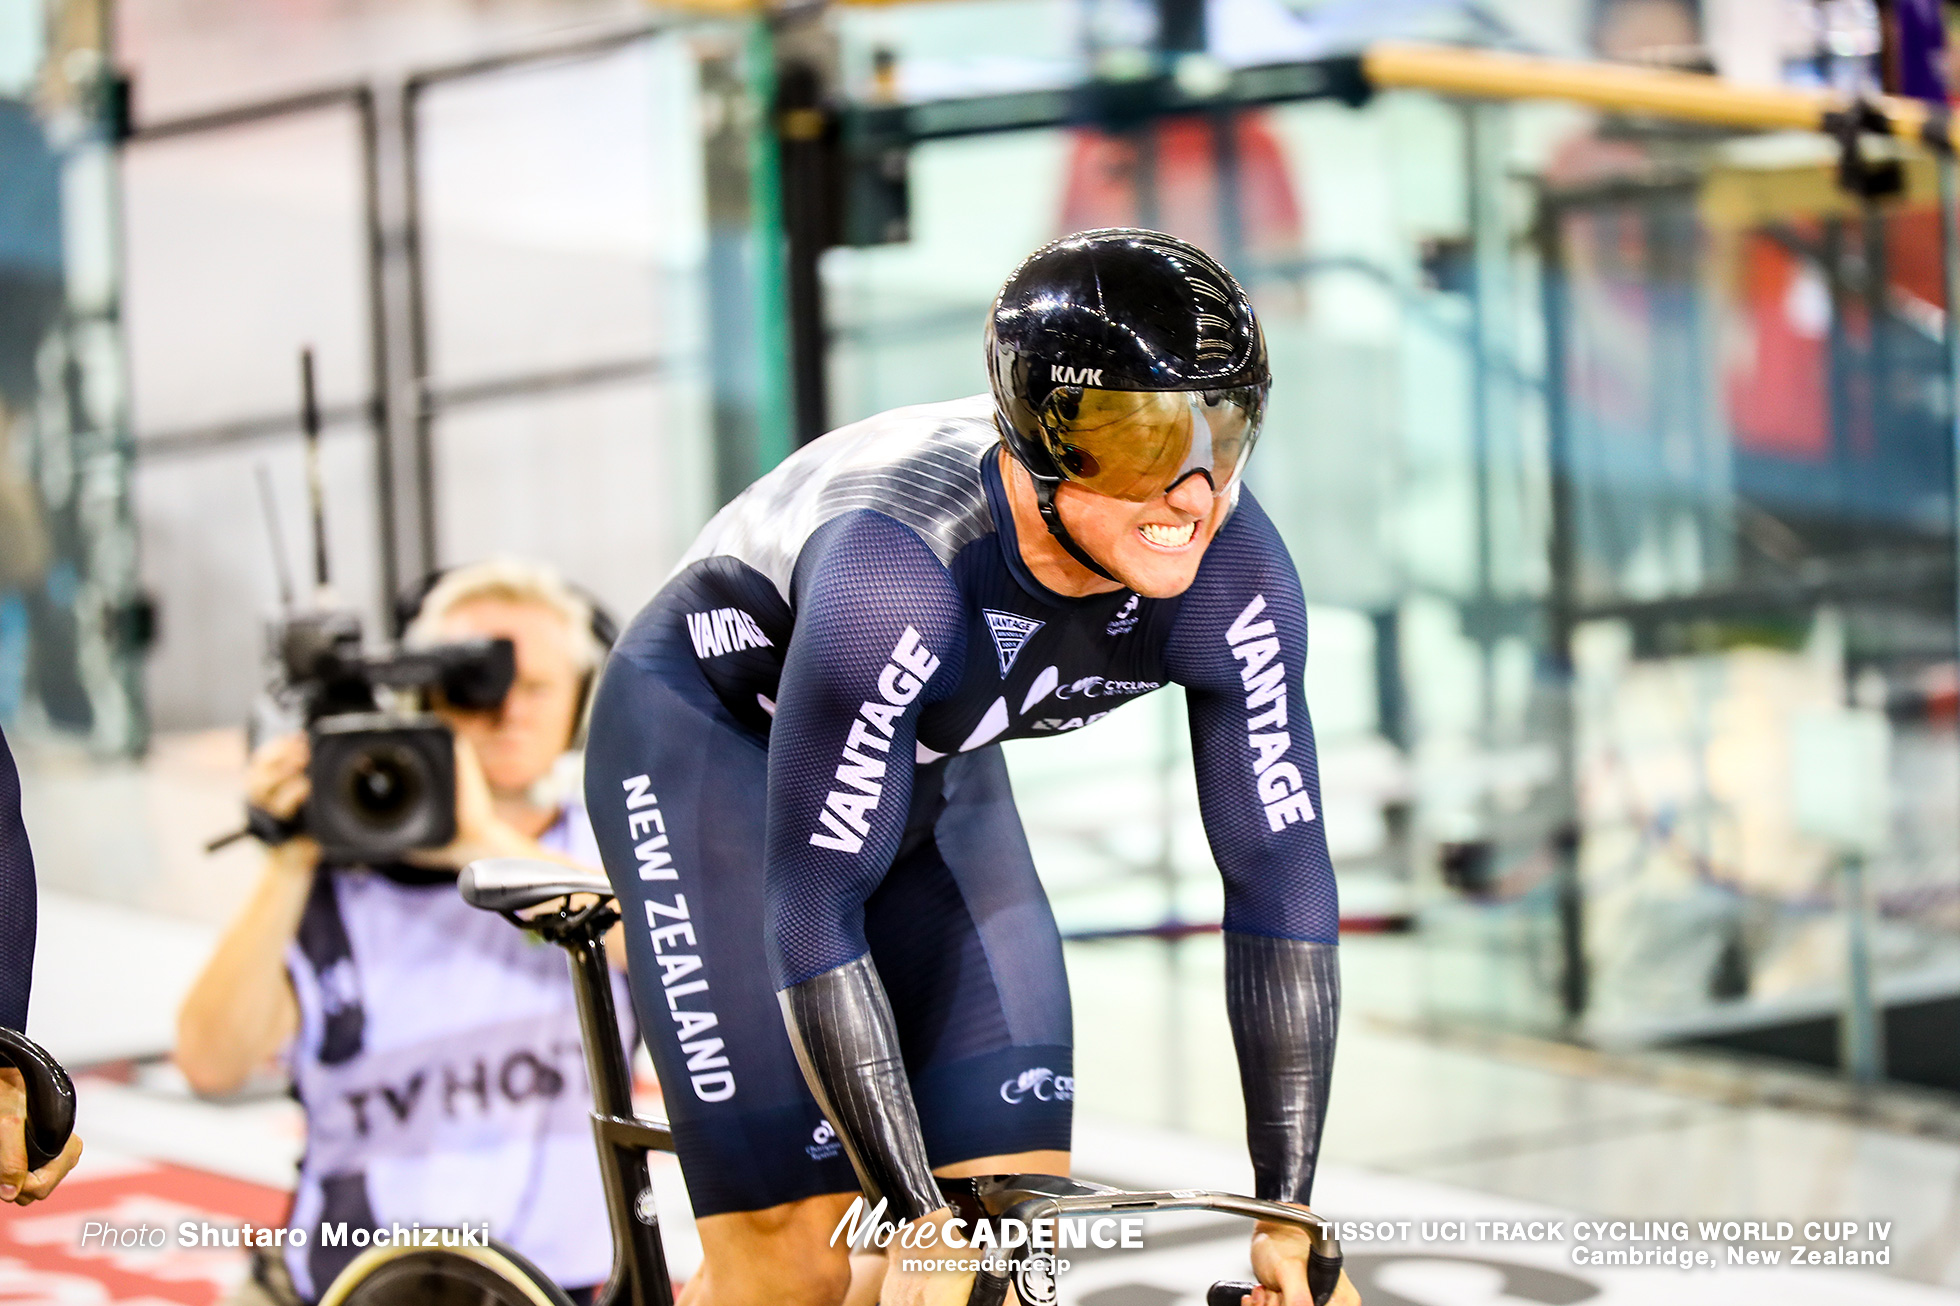 Qualifying / Men's Team Sprint / TISSOT UCI TRACK CYCLING WORLD CUP IV, Cambridge, New Zealand, Ethan MITCHELL イーサン・ミッチェル